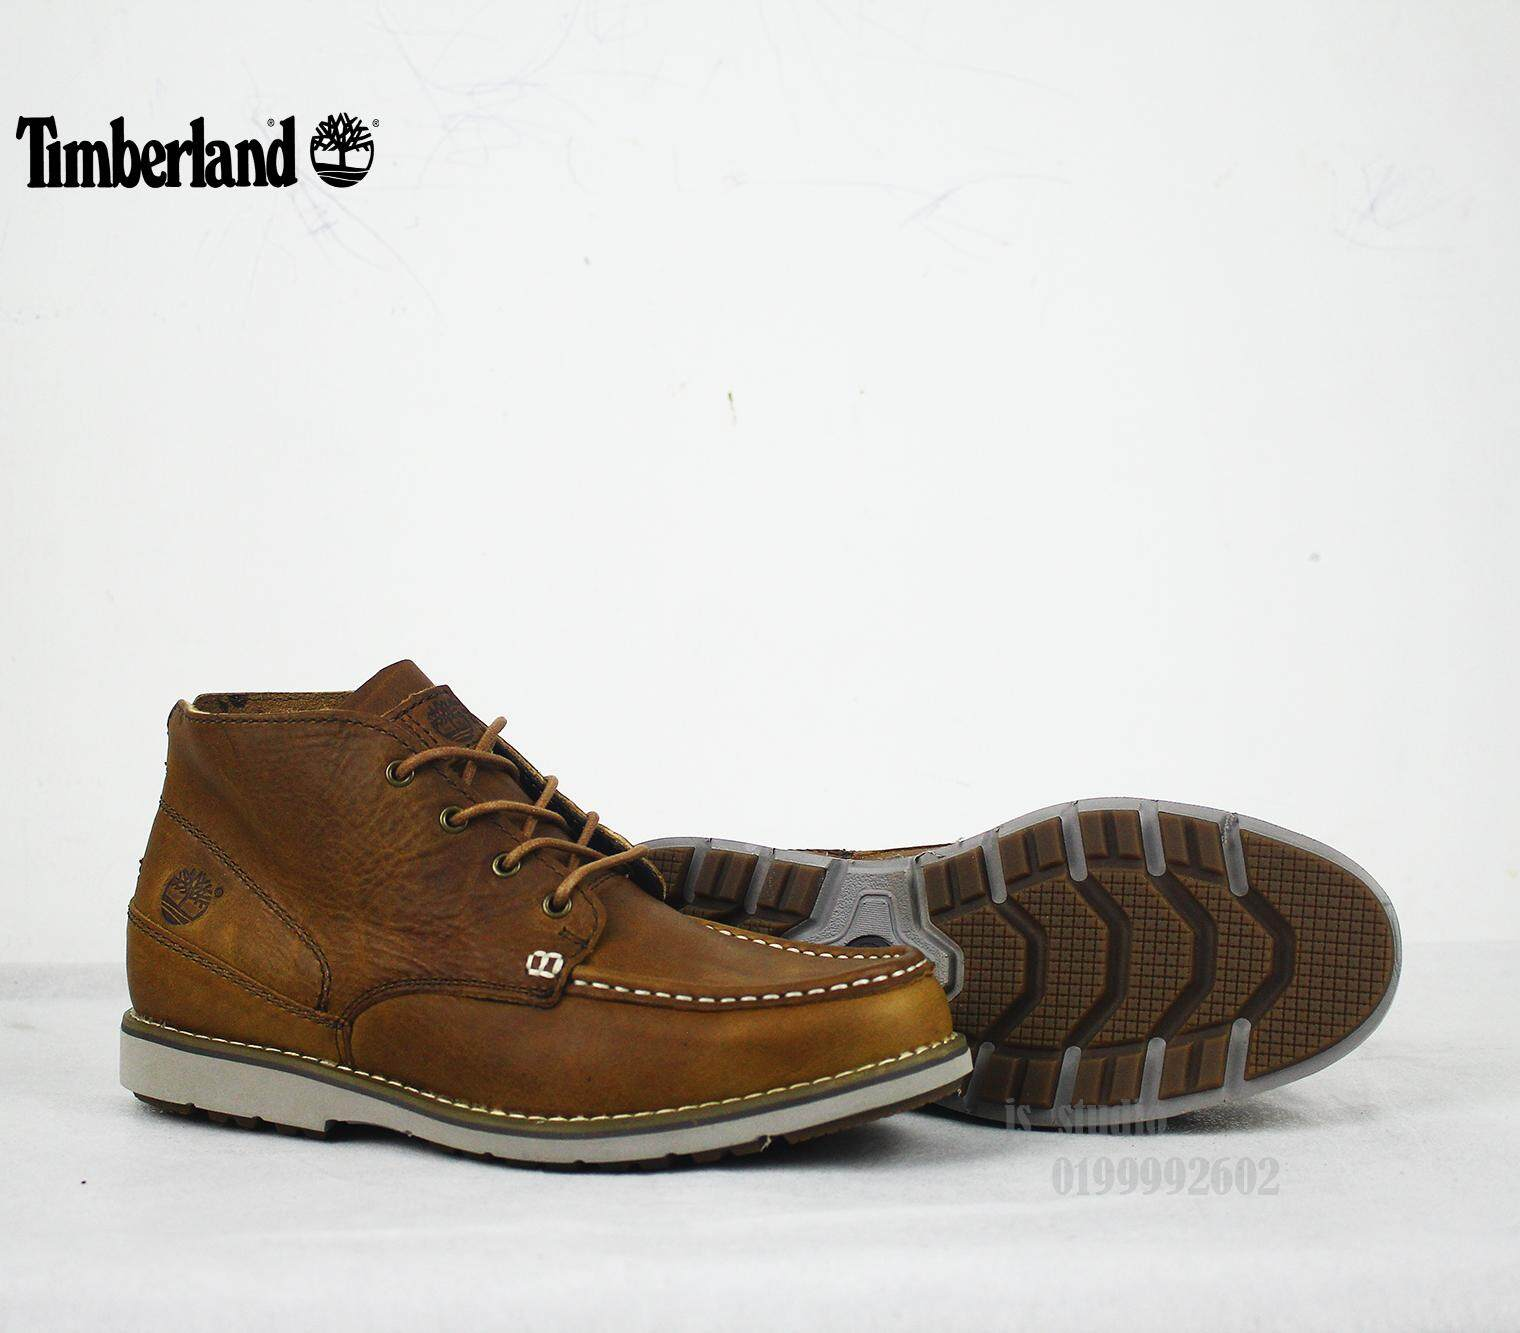 7f72029d900 Buy Timberland Men's Ankle Boots at Best Price In Malaysia | Lazada